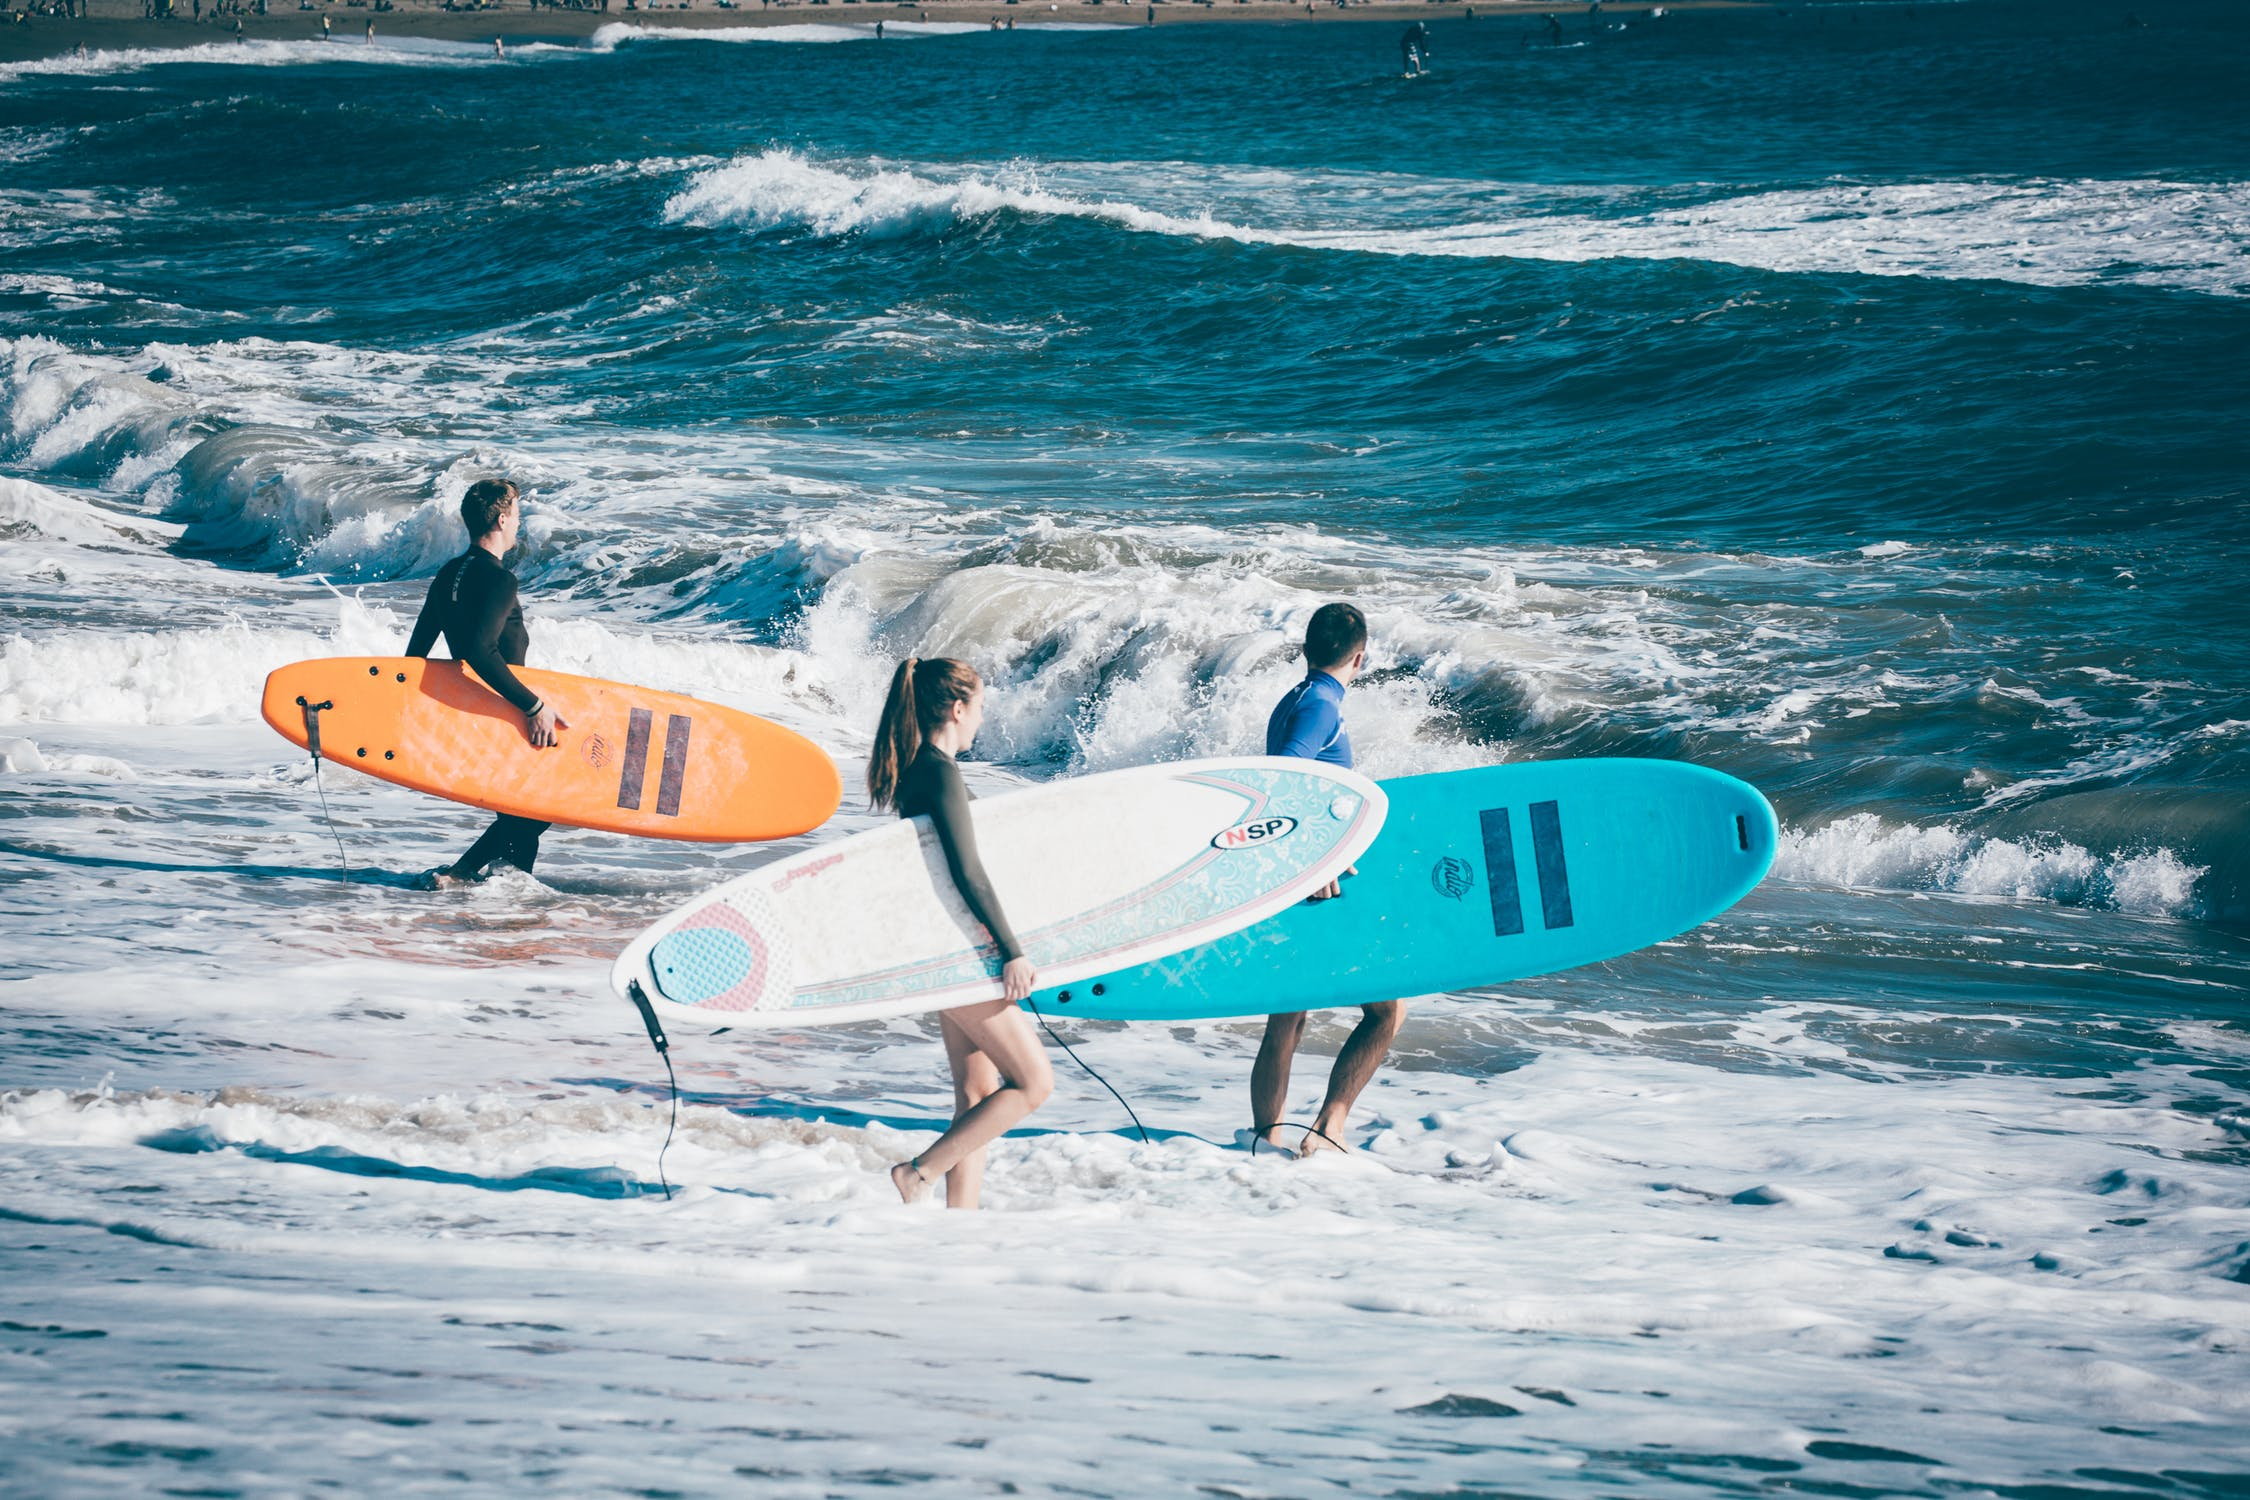 Surfing in Portugal – Surfing for Everyone